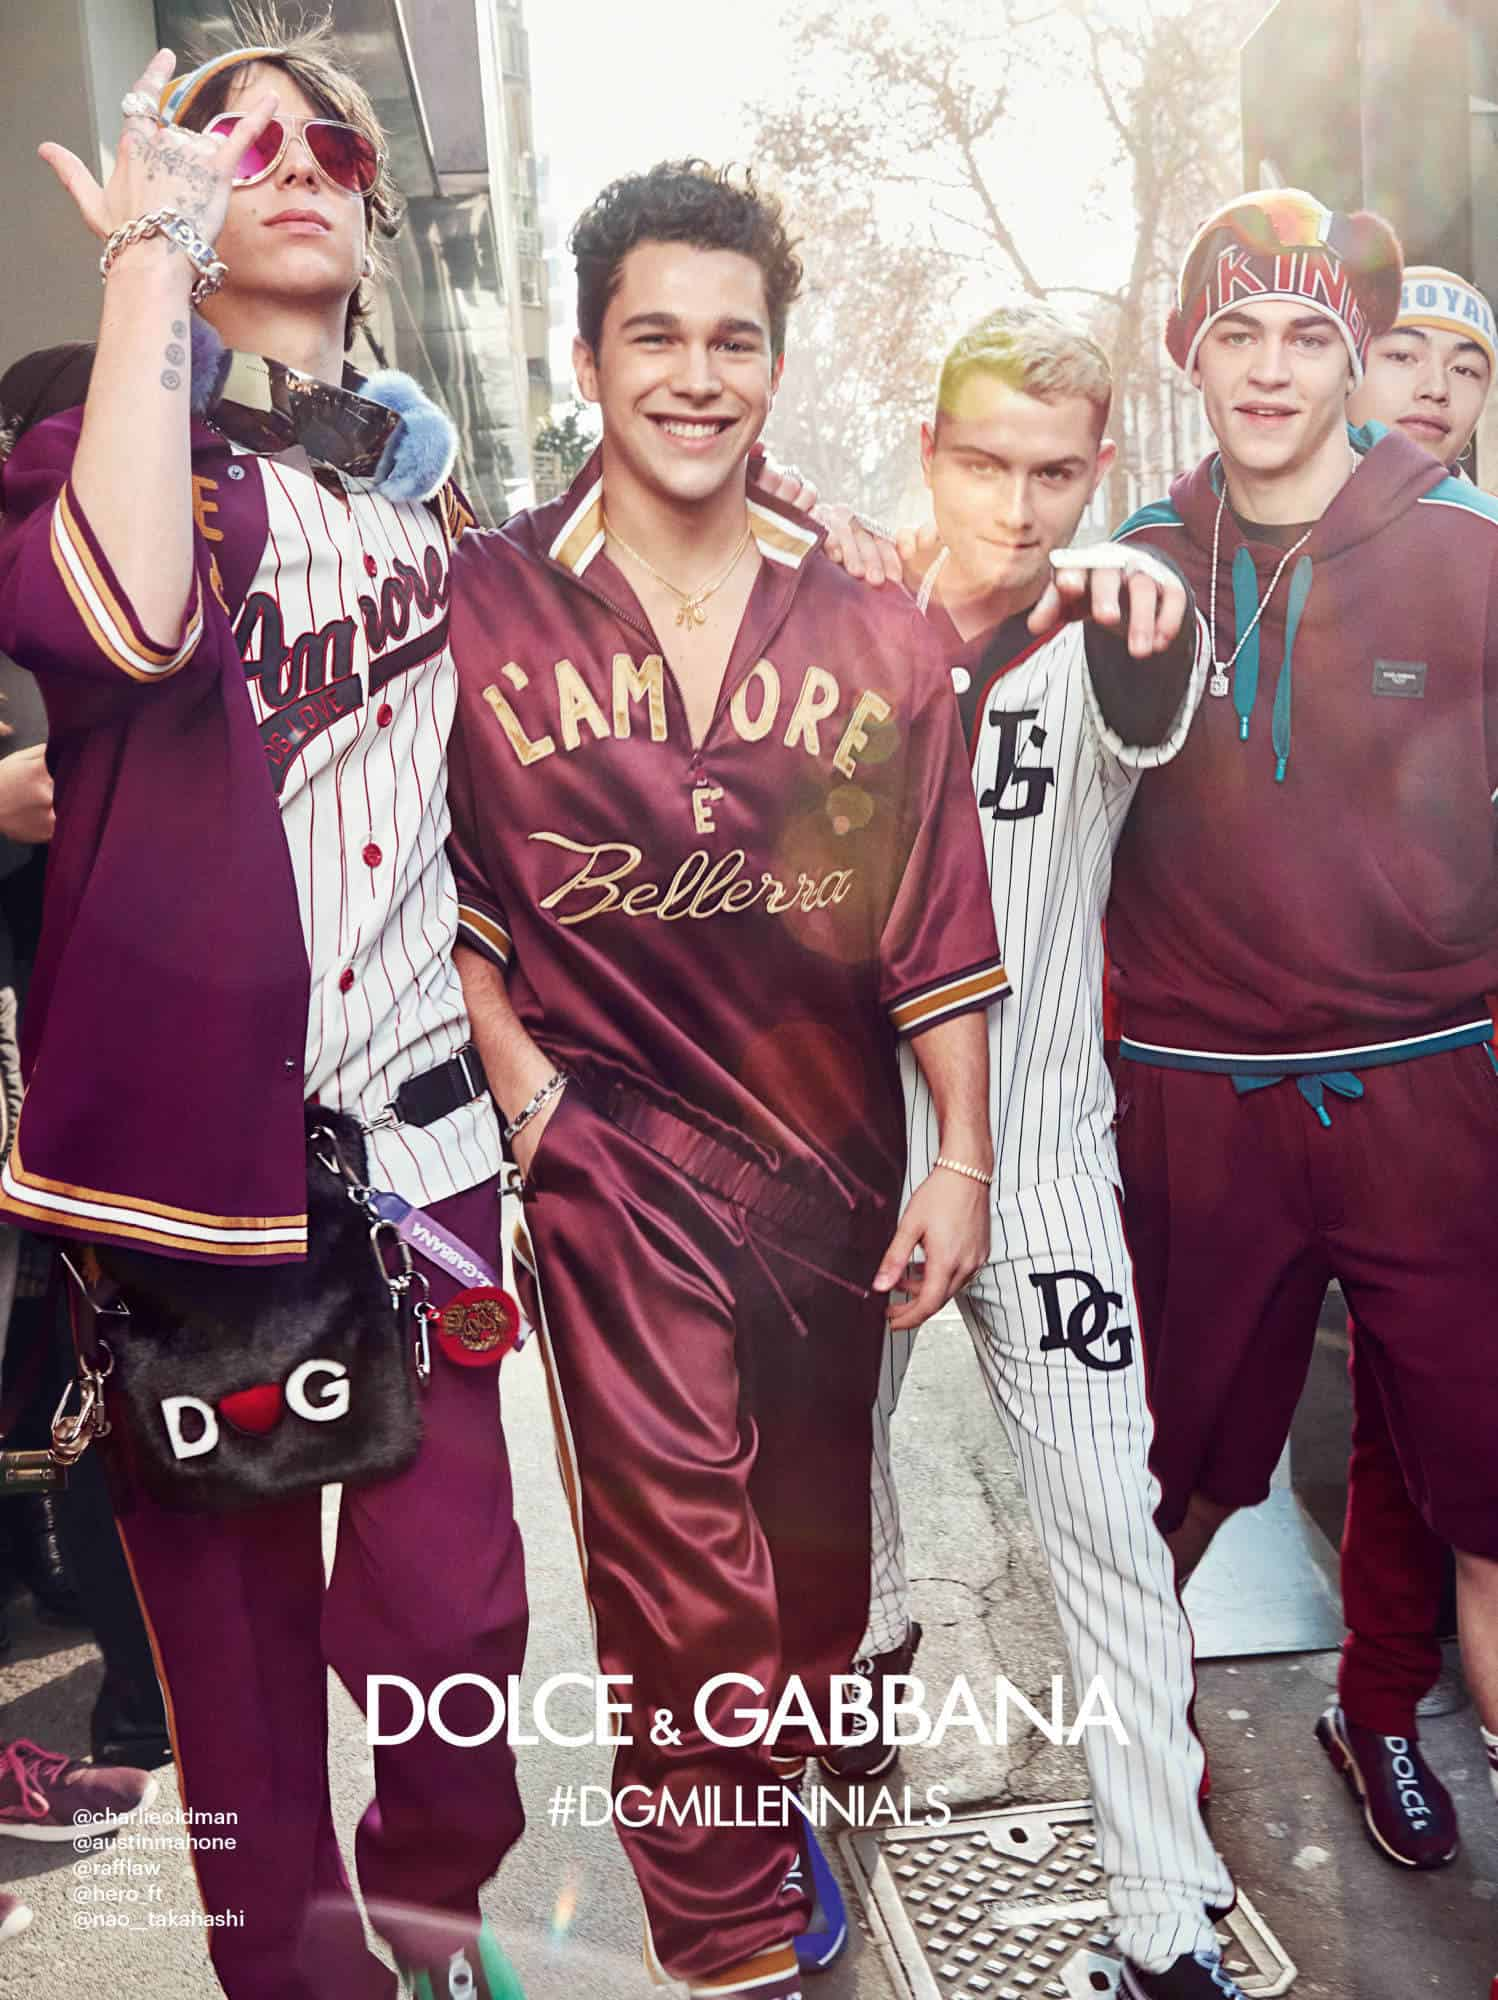 Dolce  Gabbanas New Campaign is Bursting at the Seams